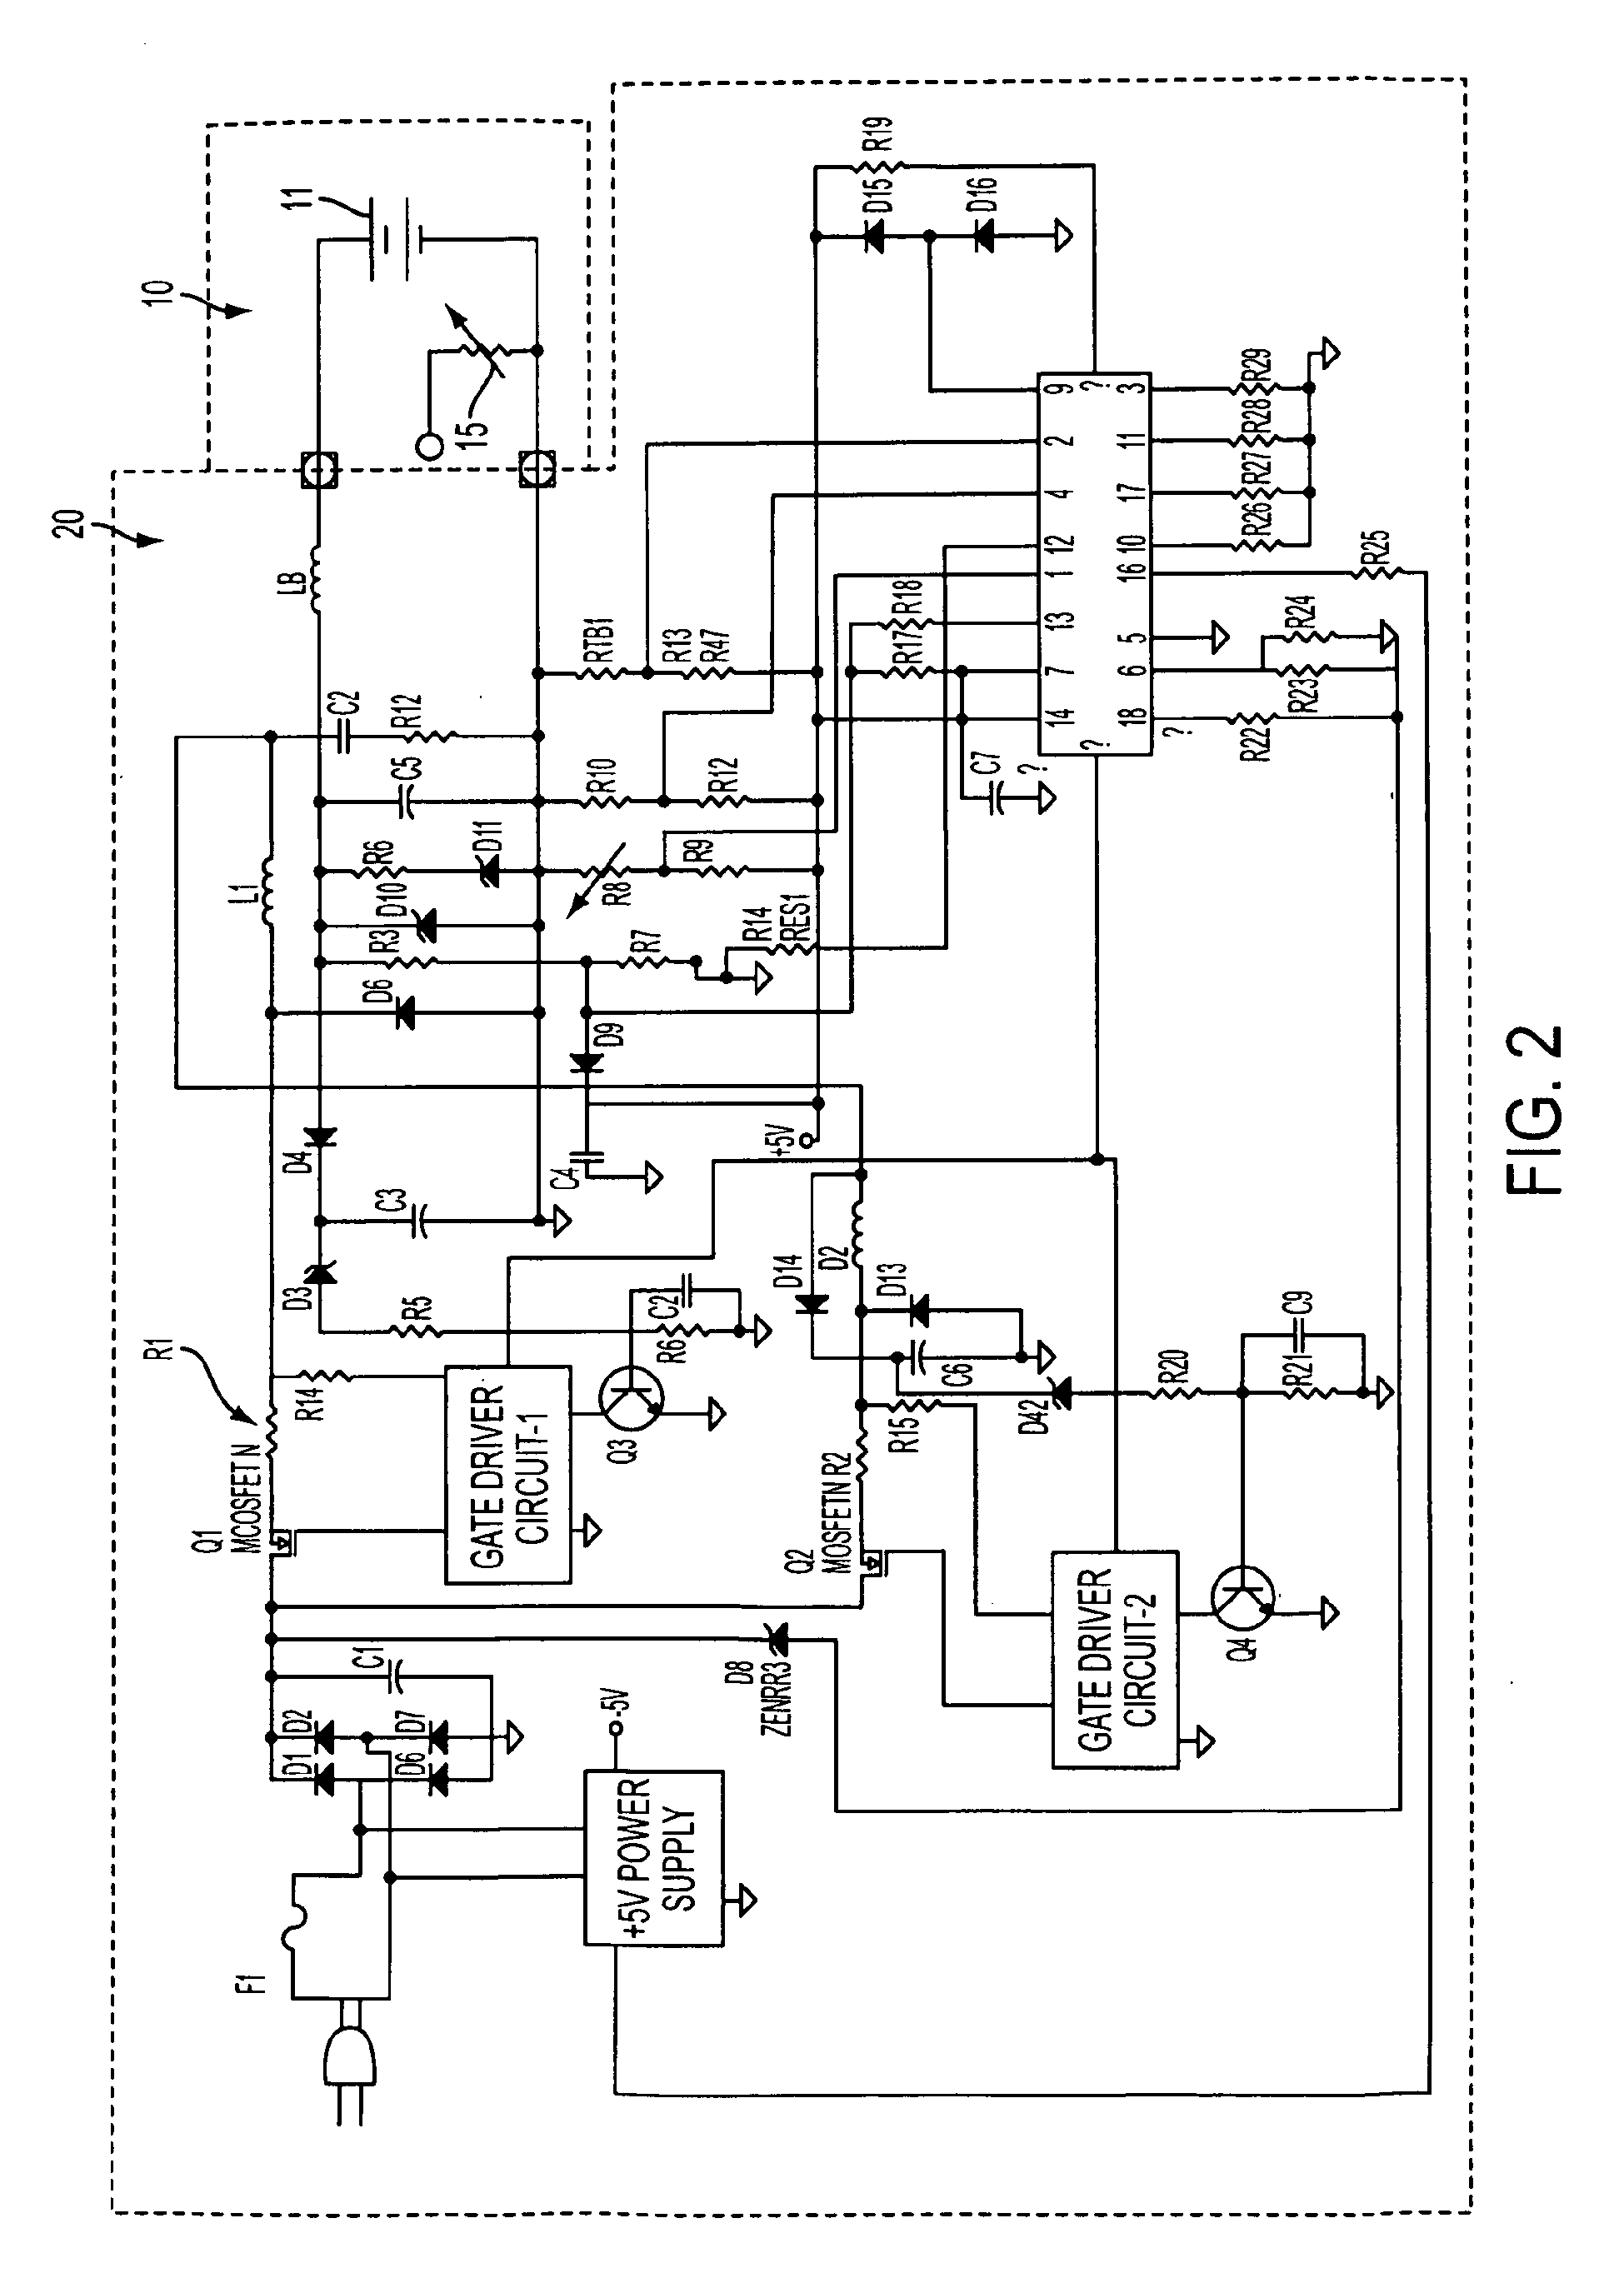 Fox Battery Charger Wiring Diagram Manual Of Schematic Parts